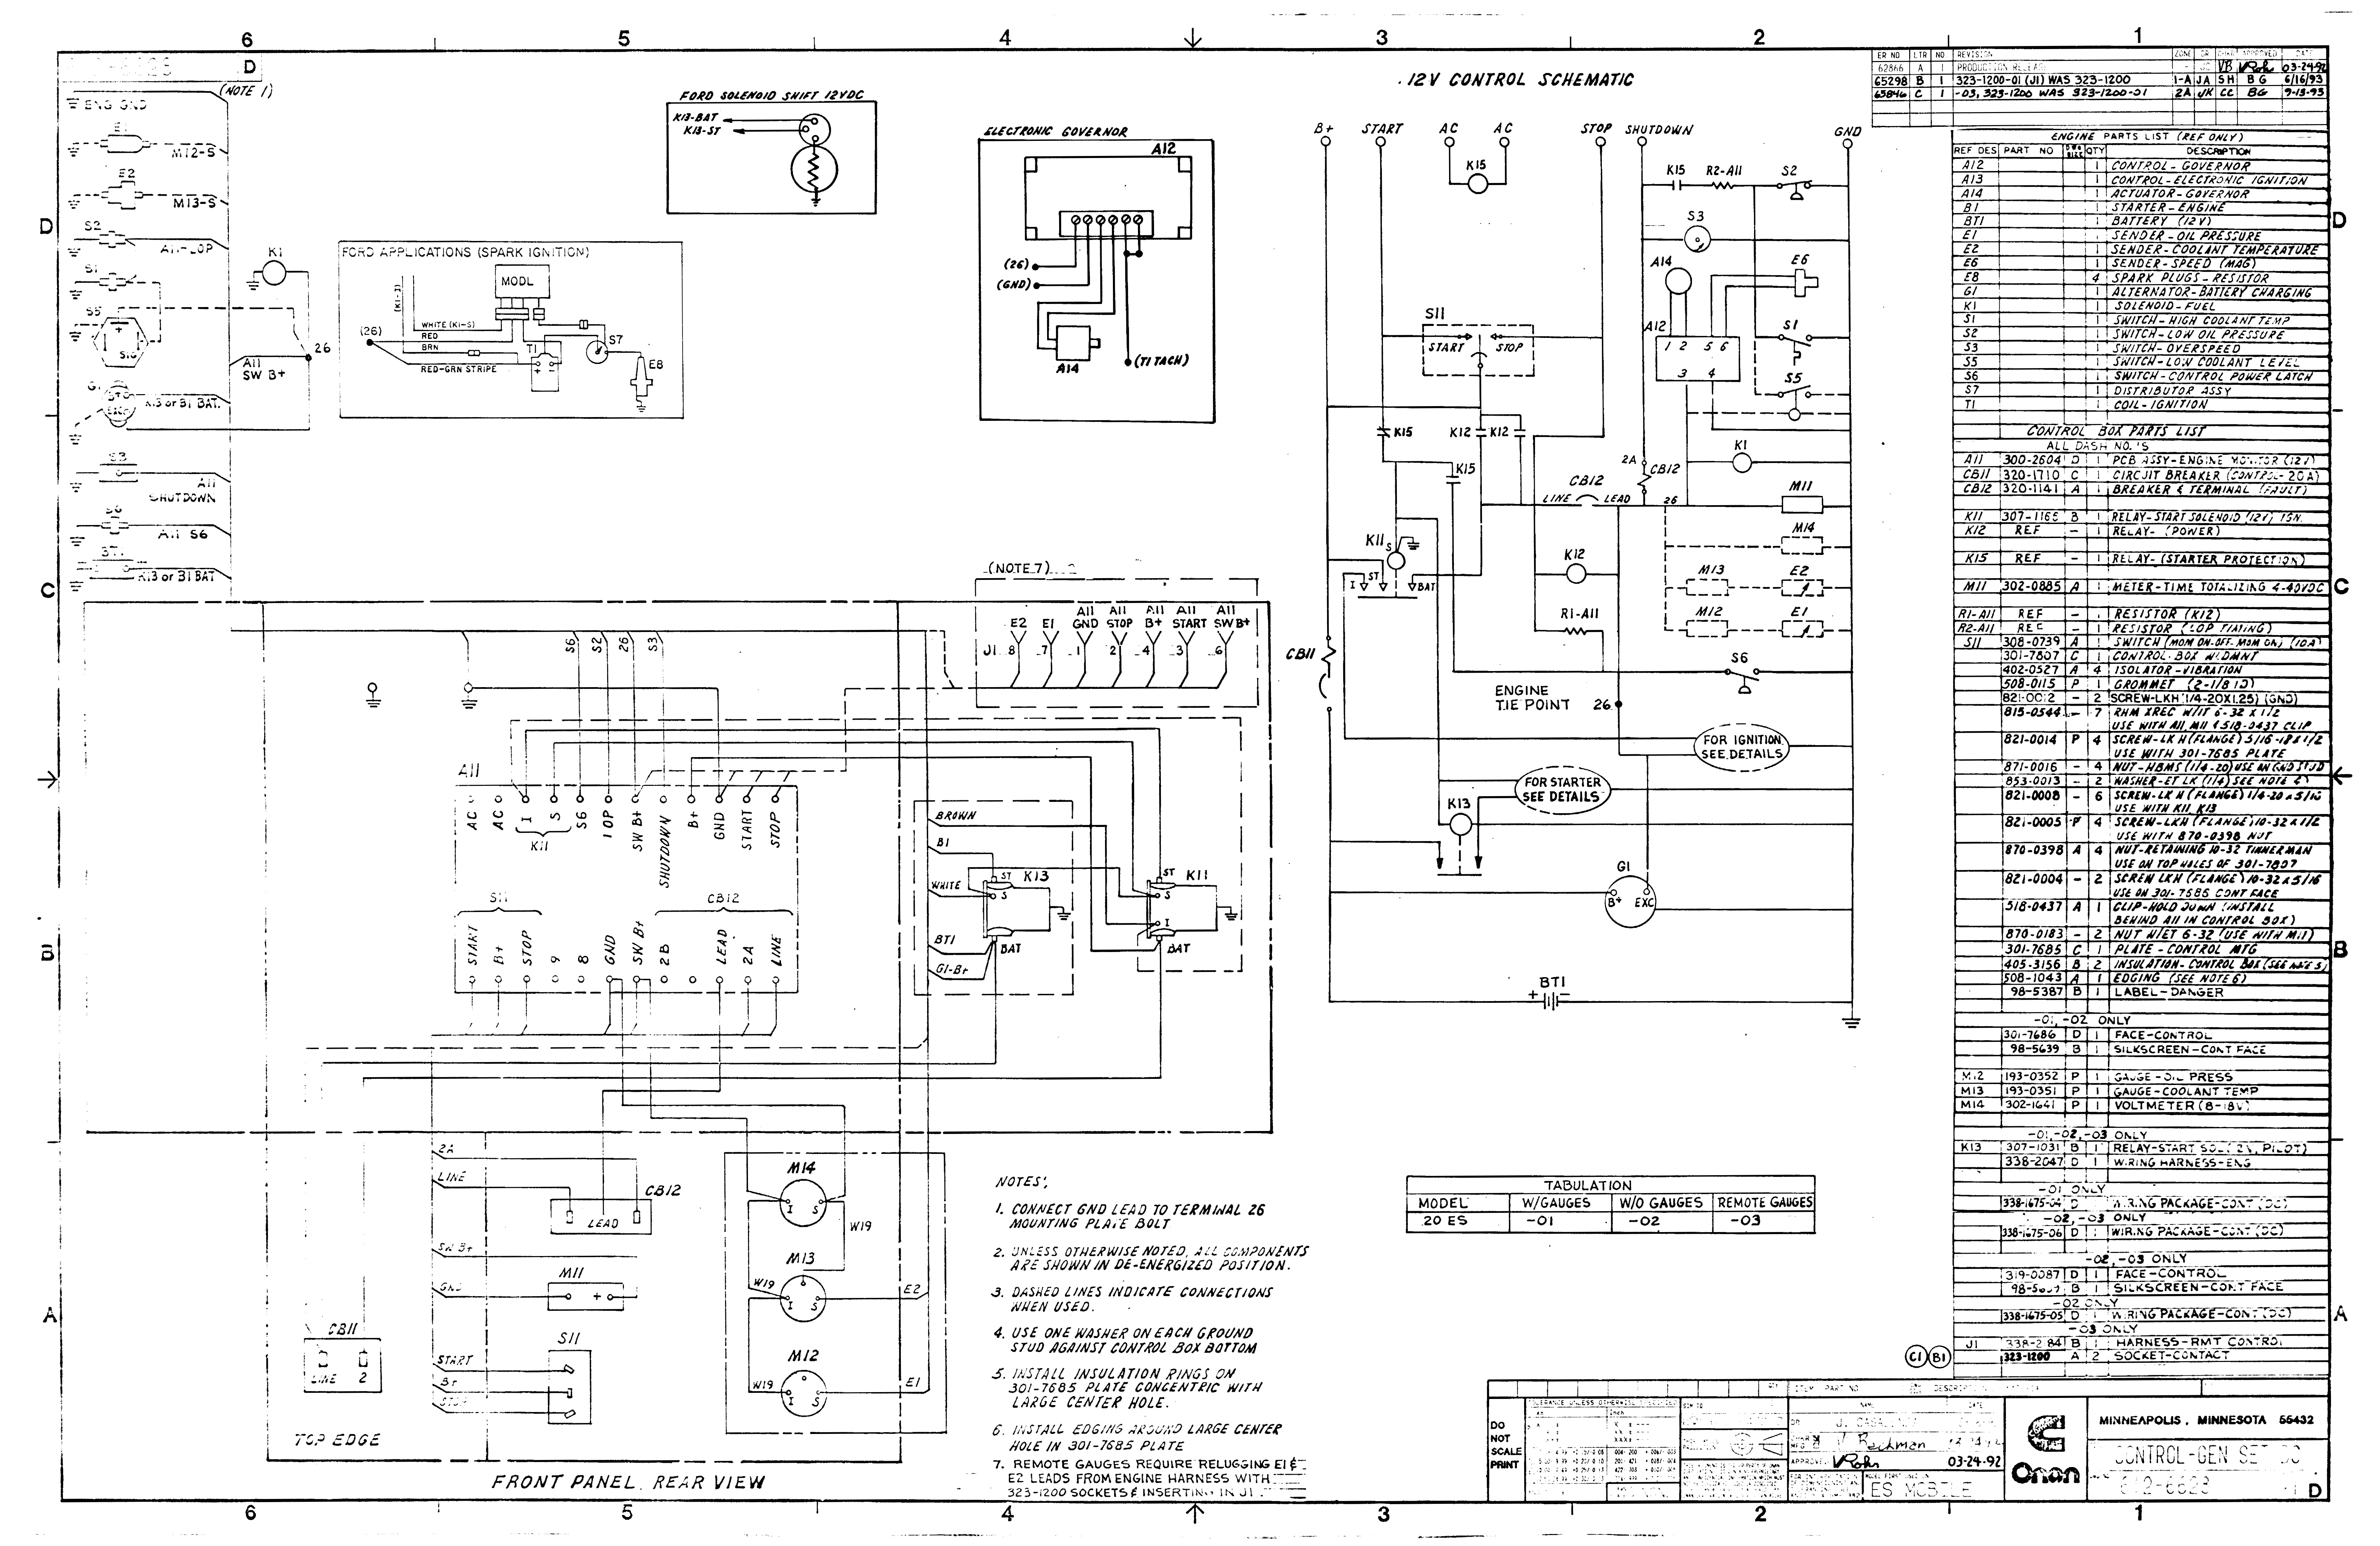 Diagram Electrical Wiring in addition Solar Generator Wiring Diagrams also 30 Transfer Switch Wiring Diagram For Rv additionally Onan as well Onan Generator Wiring. on troubleshooting generac transfer switch wiring diagram